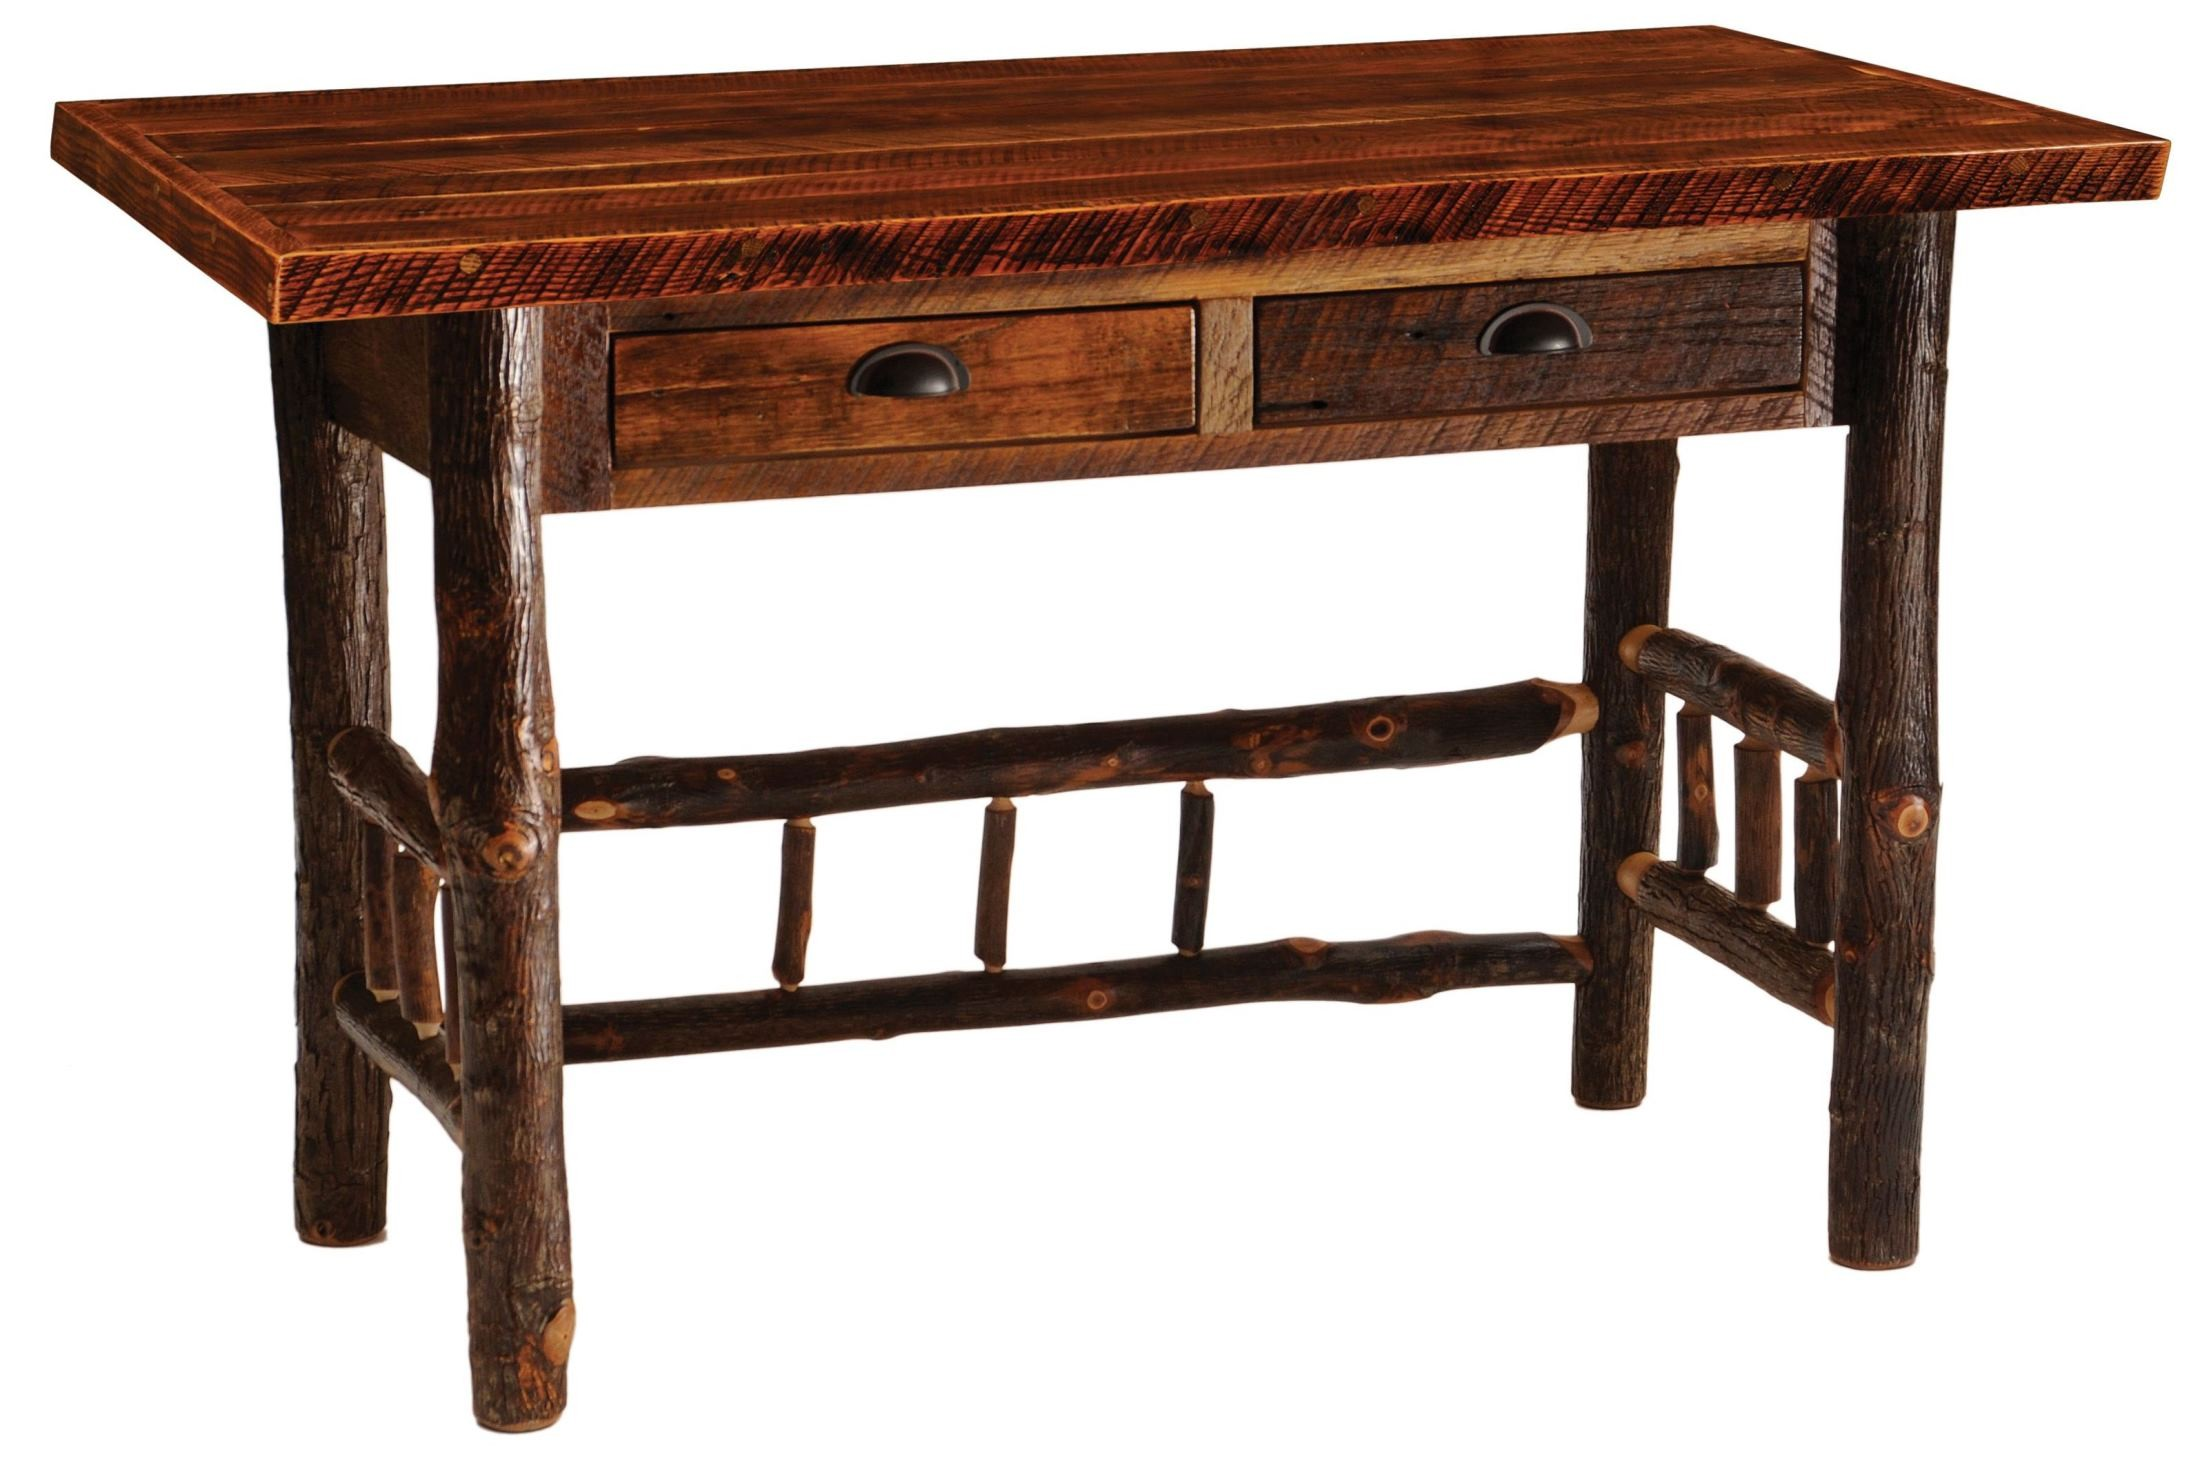 barnwood 2 drawers artisan top writing desk with hickory legs from fireside lodge b17400 at. Black Bedroom Furniture Sets. Home Design Ideas